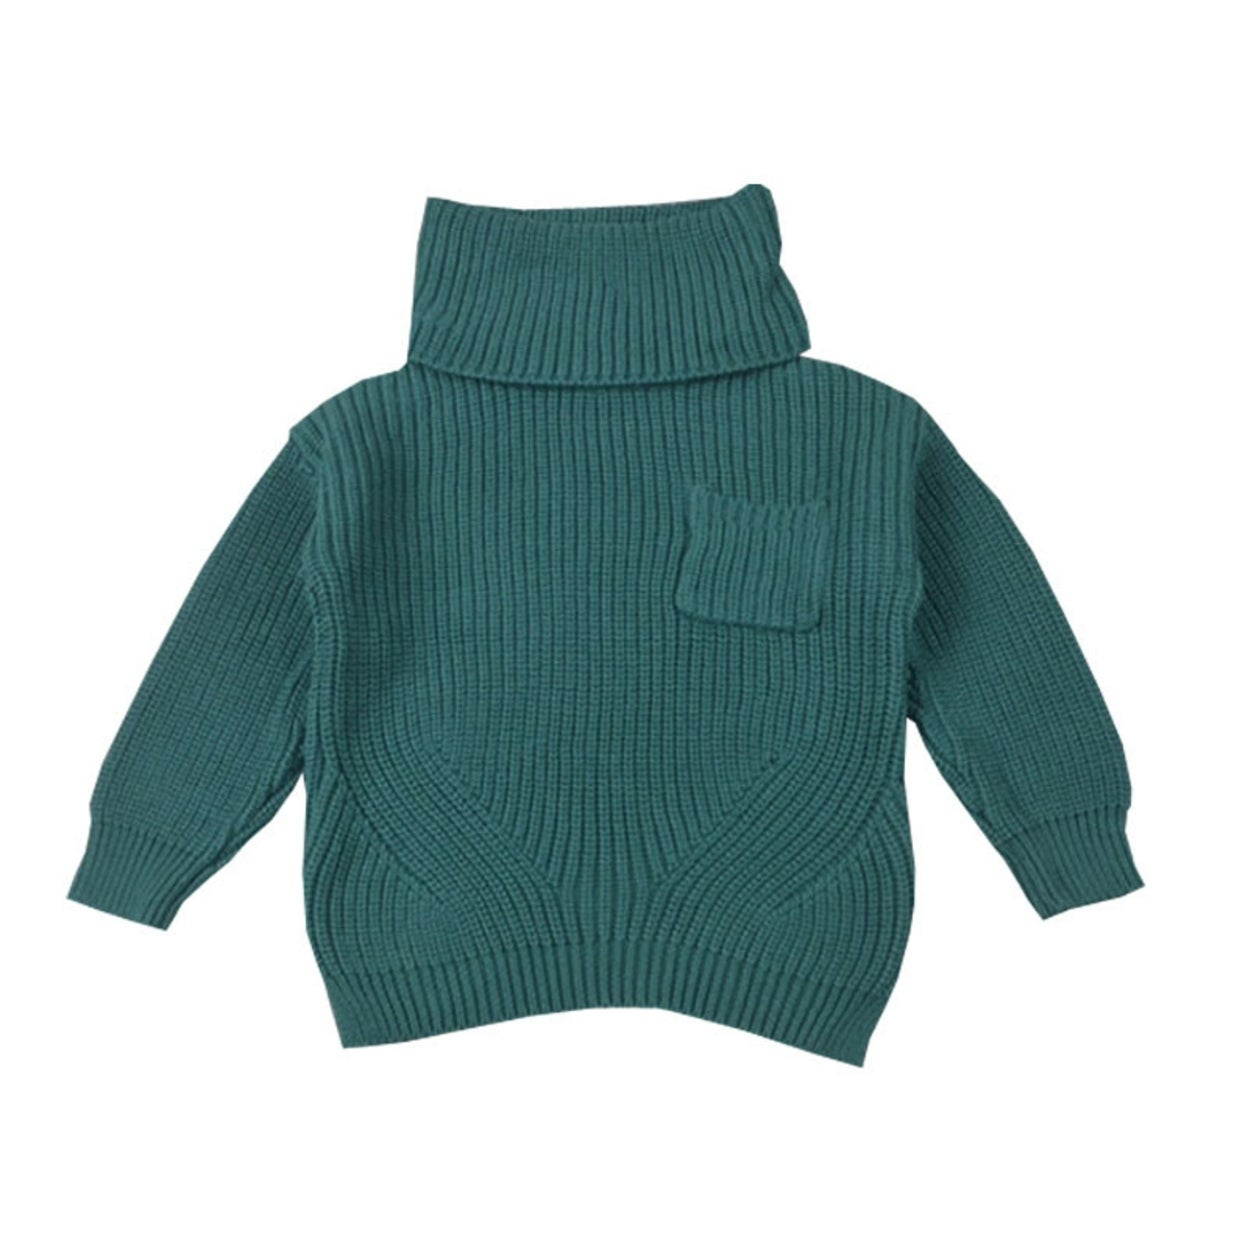 660cd721ae75 Shop Baby Girl Boy Clothes High Neck Warm Sweater Children Toddler ...